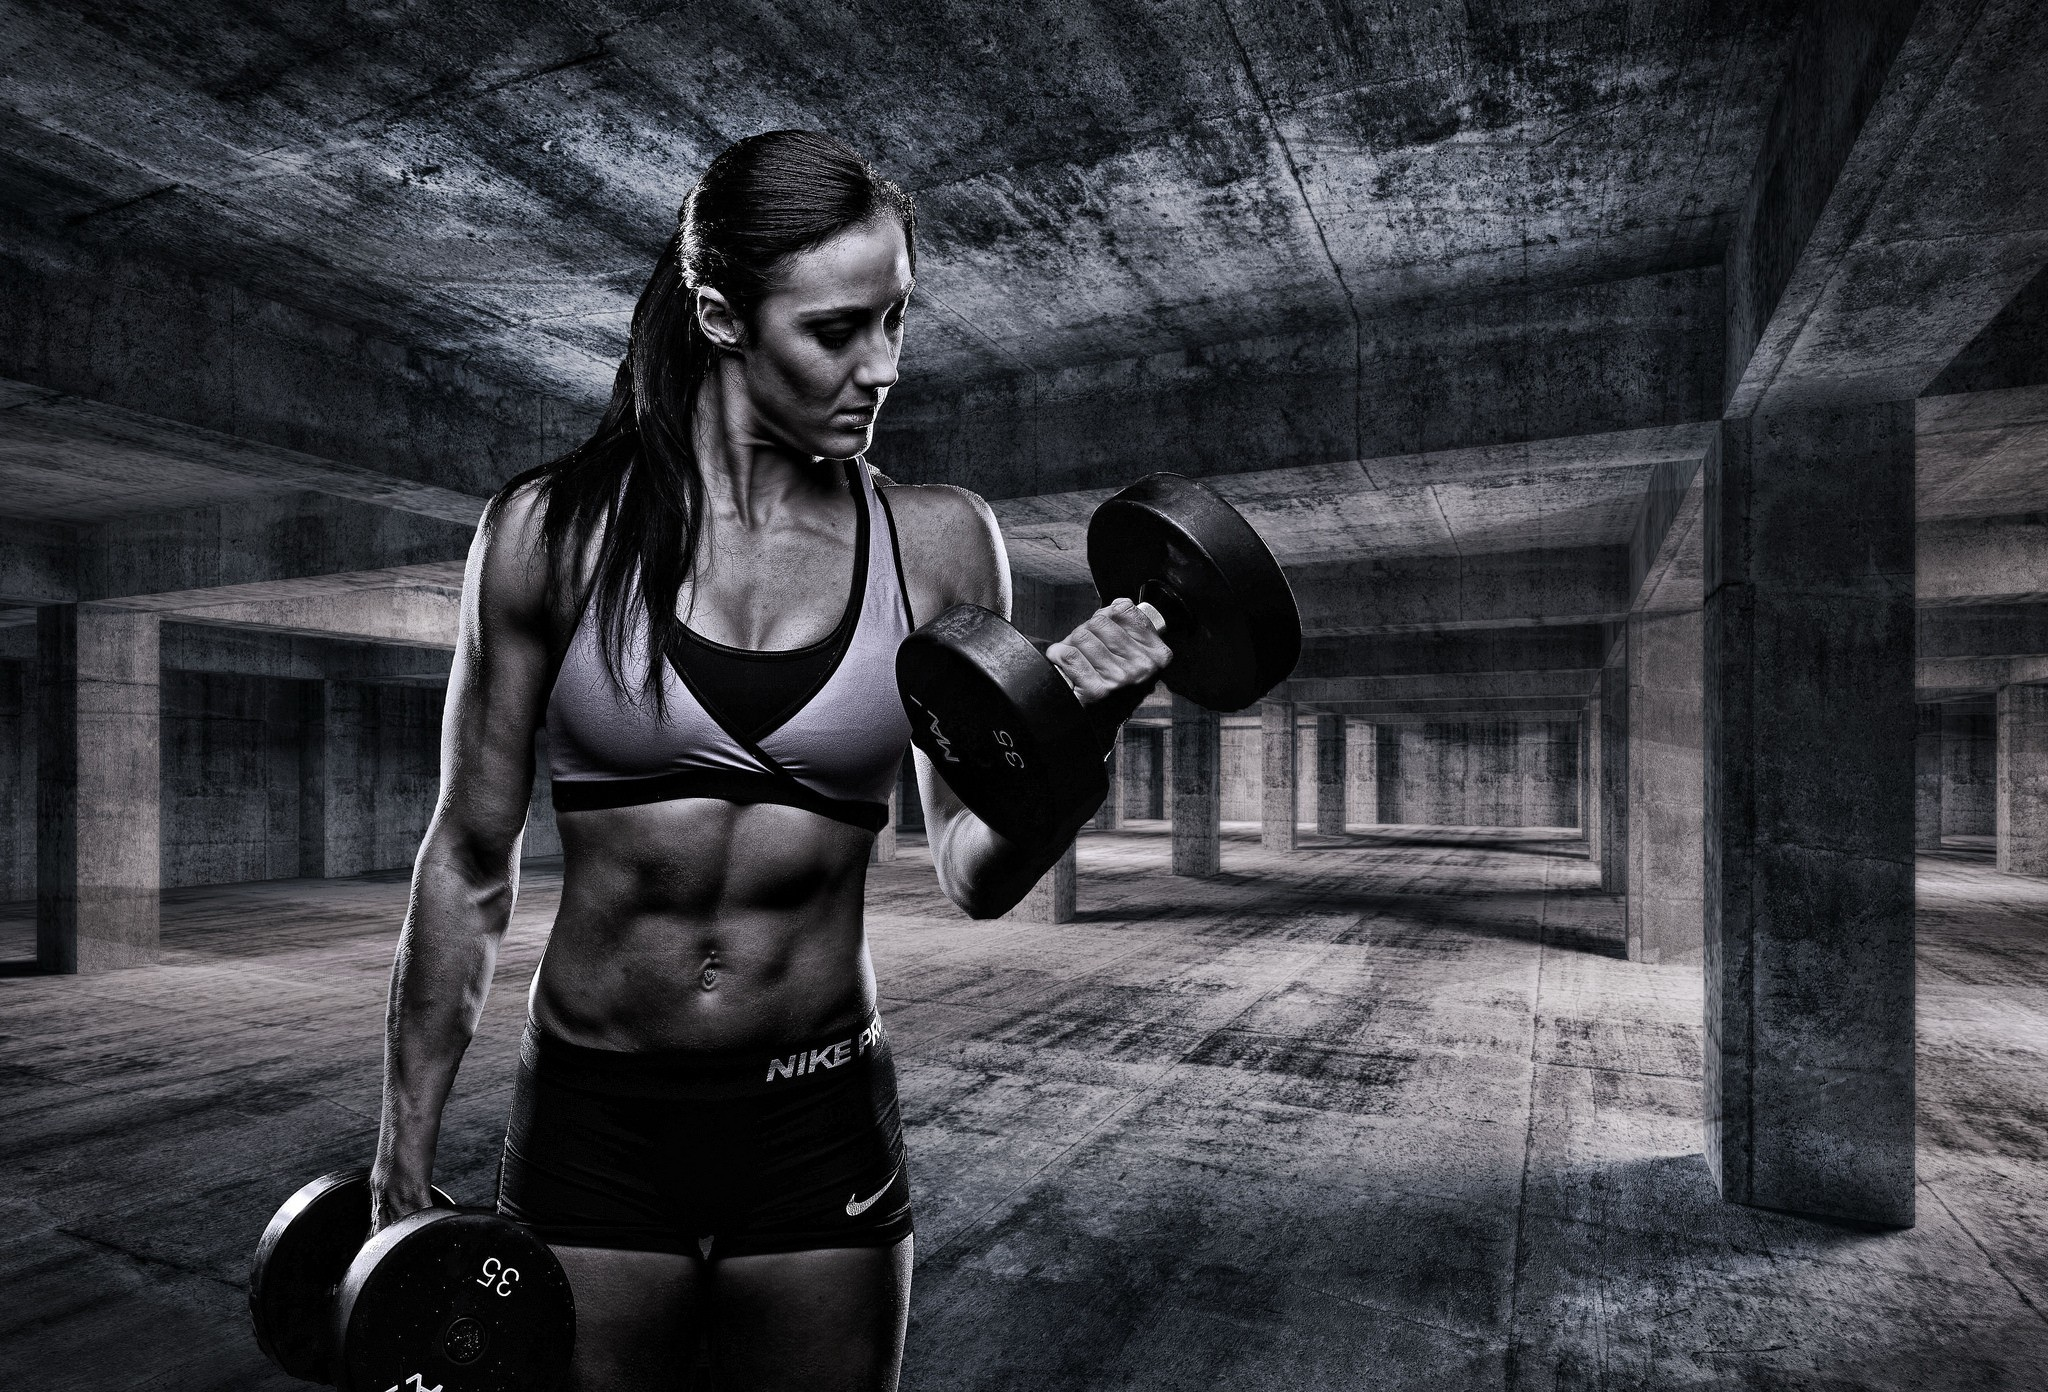 Res: 2048x1392, Weightlifting Wallpapers 21 - 2048 X 1392